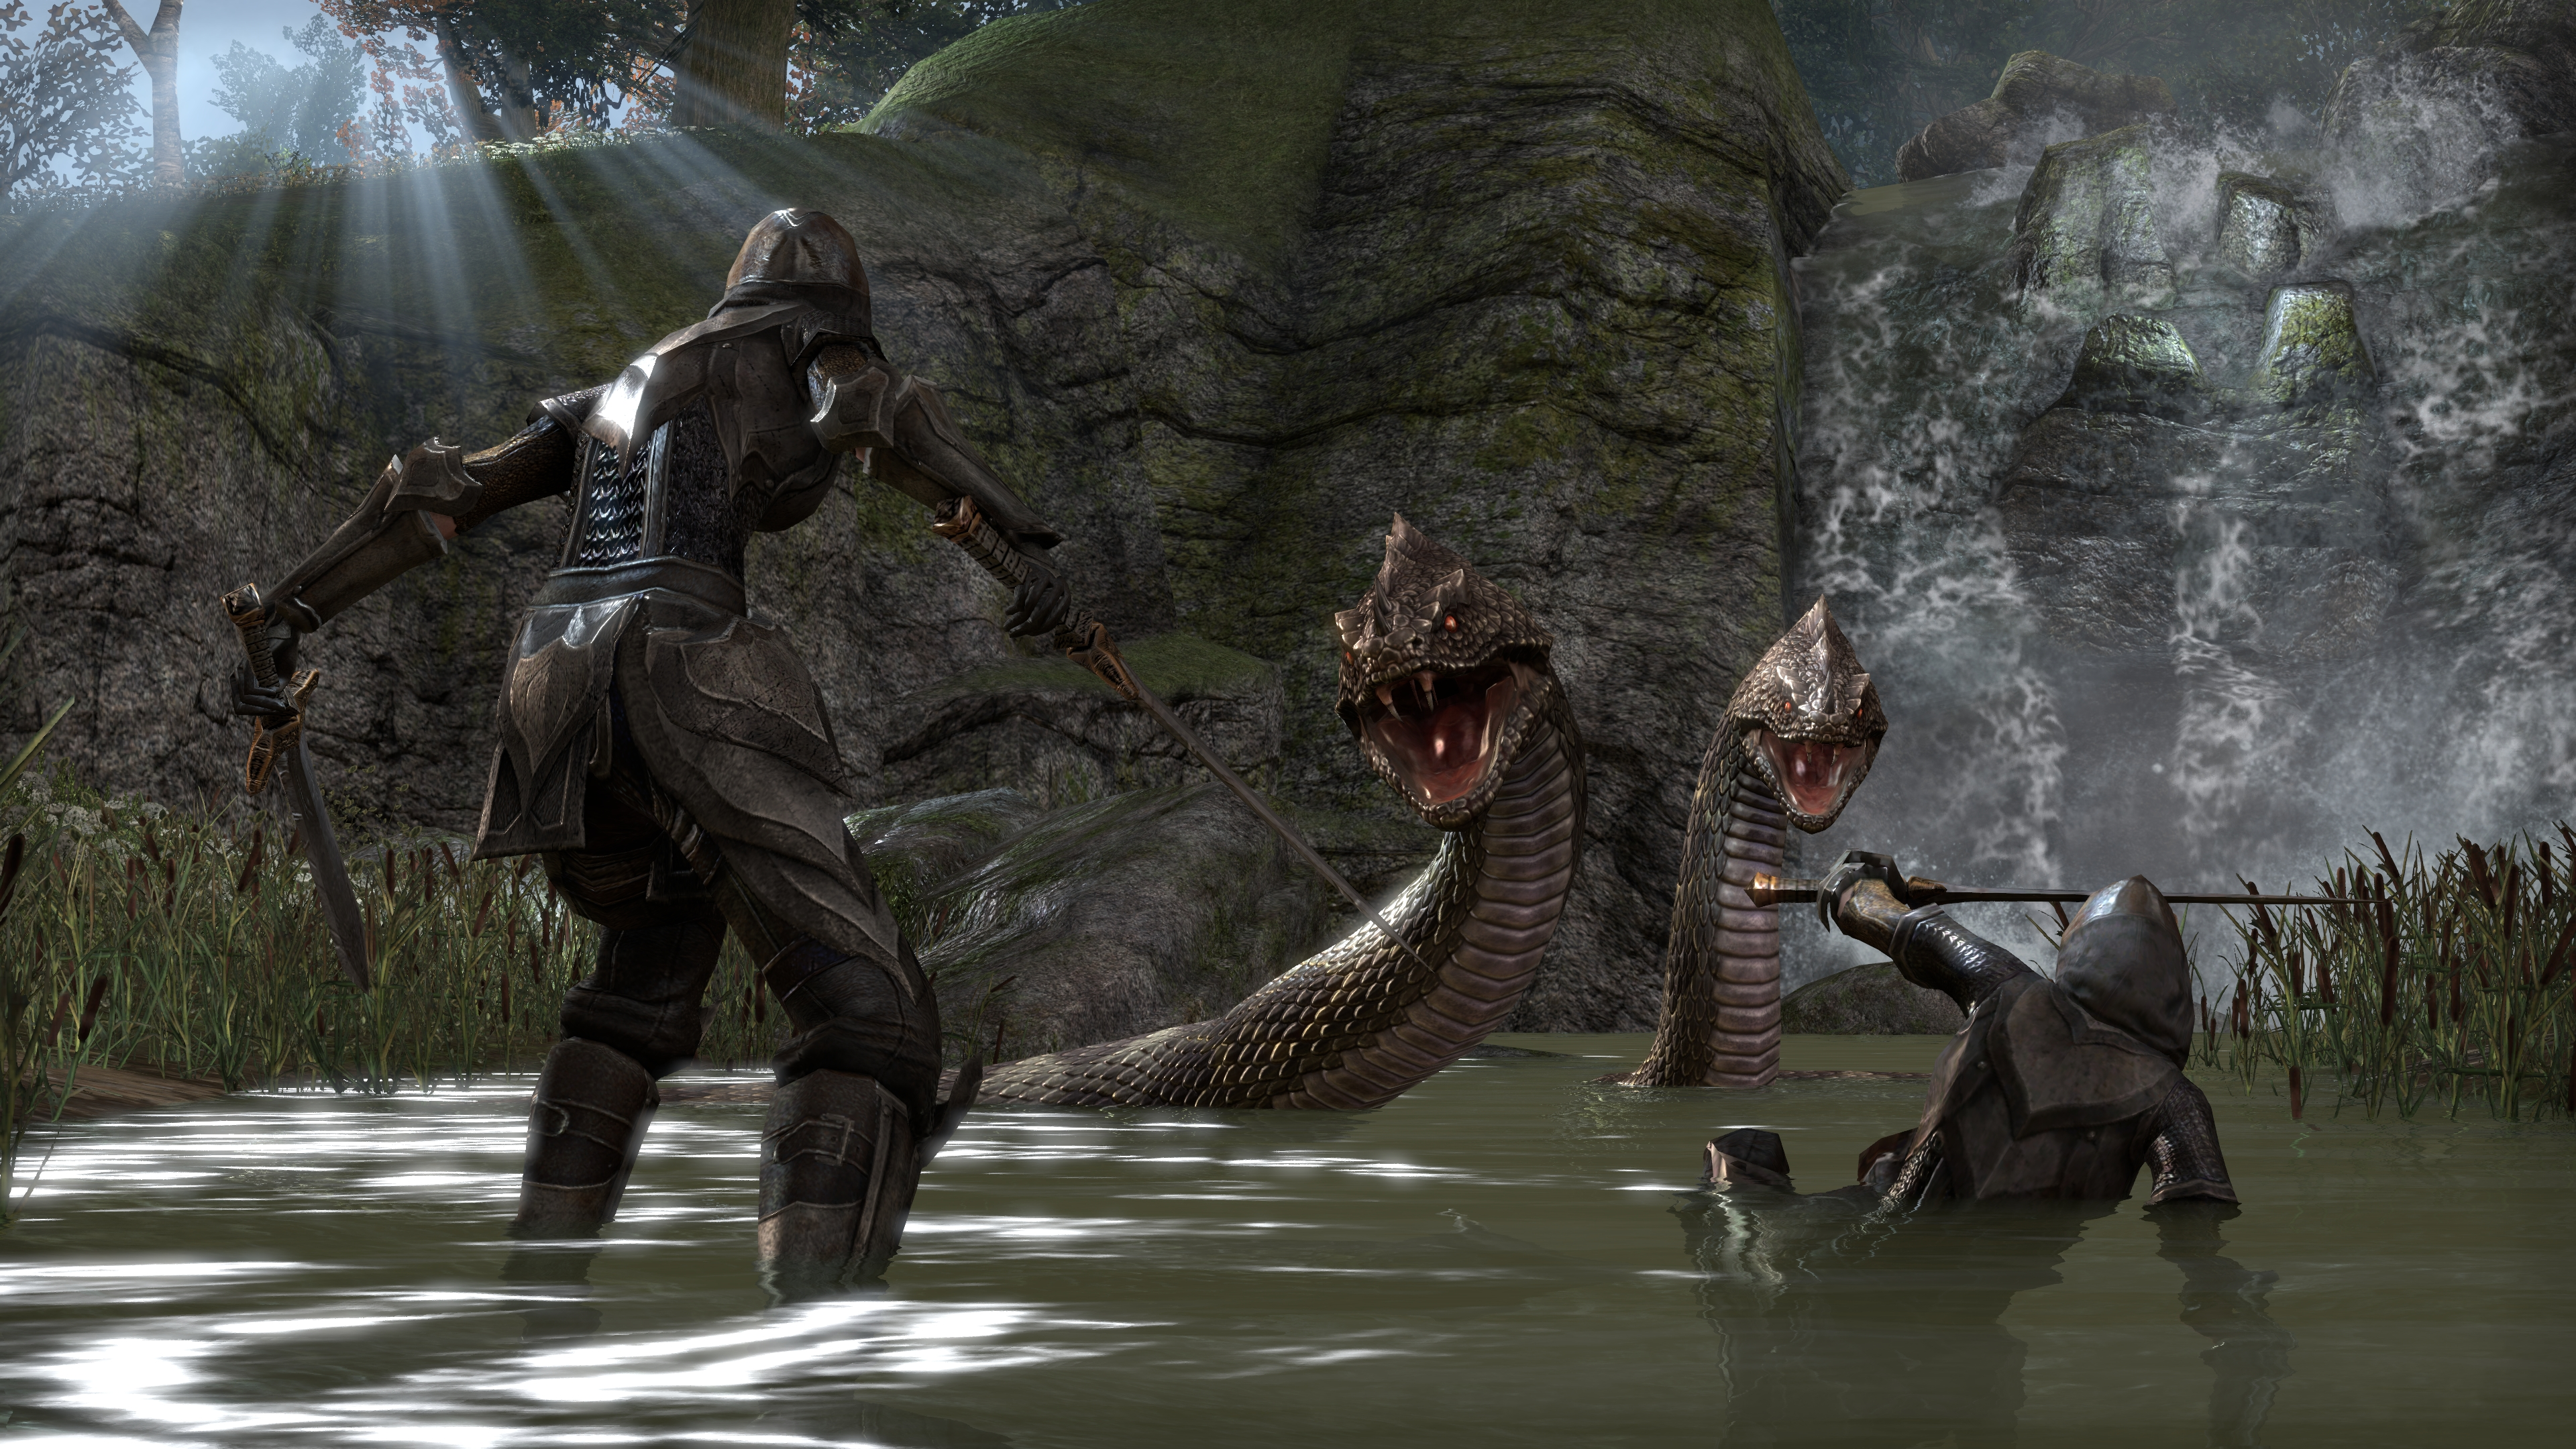 Photos The Elder Scrolls The Elder Scrolls Online Swords 3840x2160